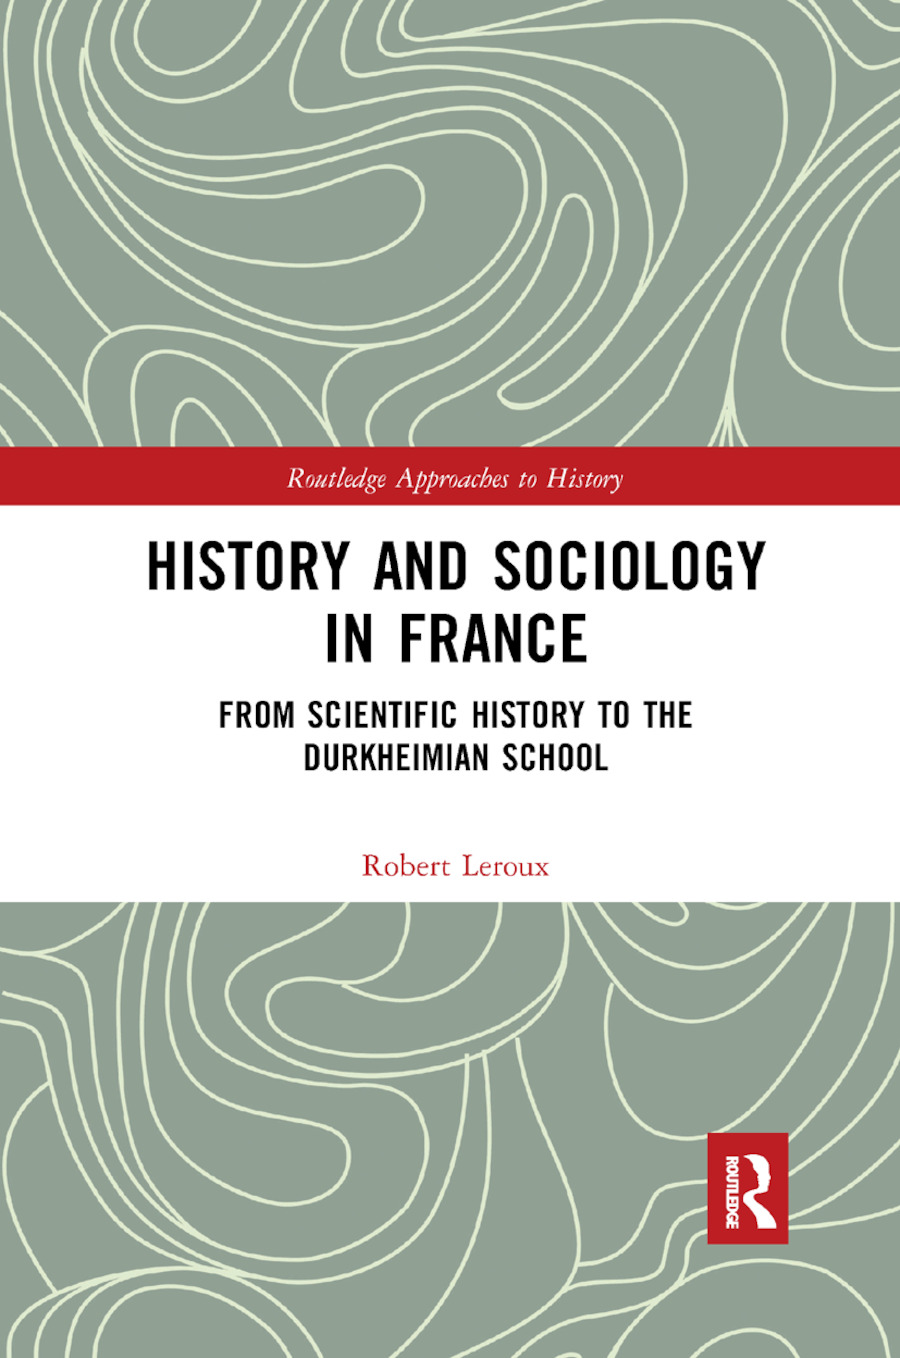 History and Sociology in France: From Scientific History to the Durkheimian School, 1st Edition (Paperback) book cover